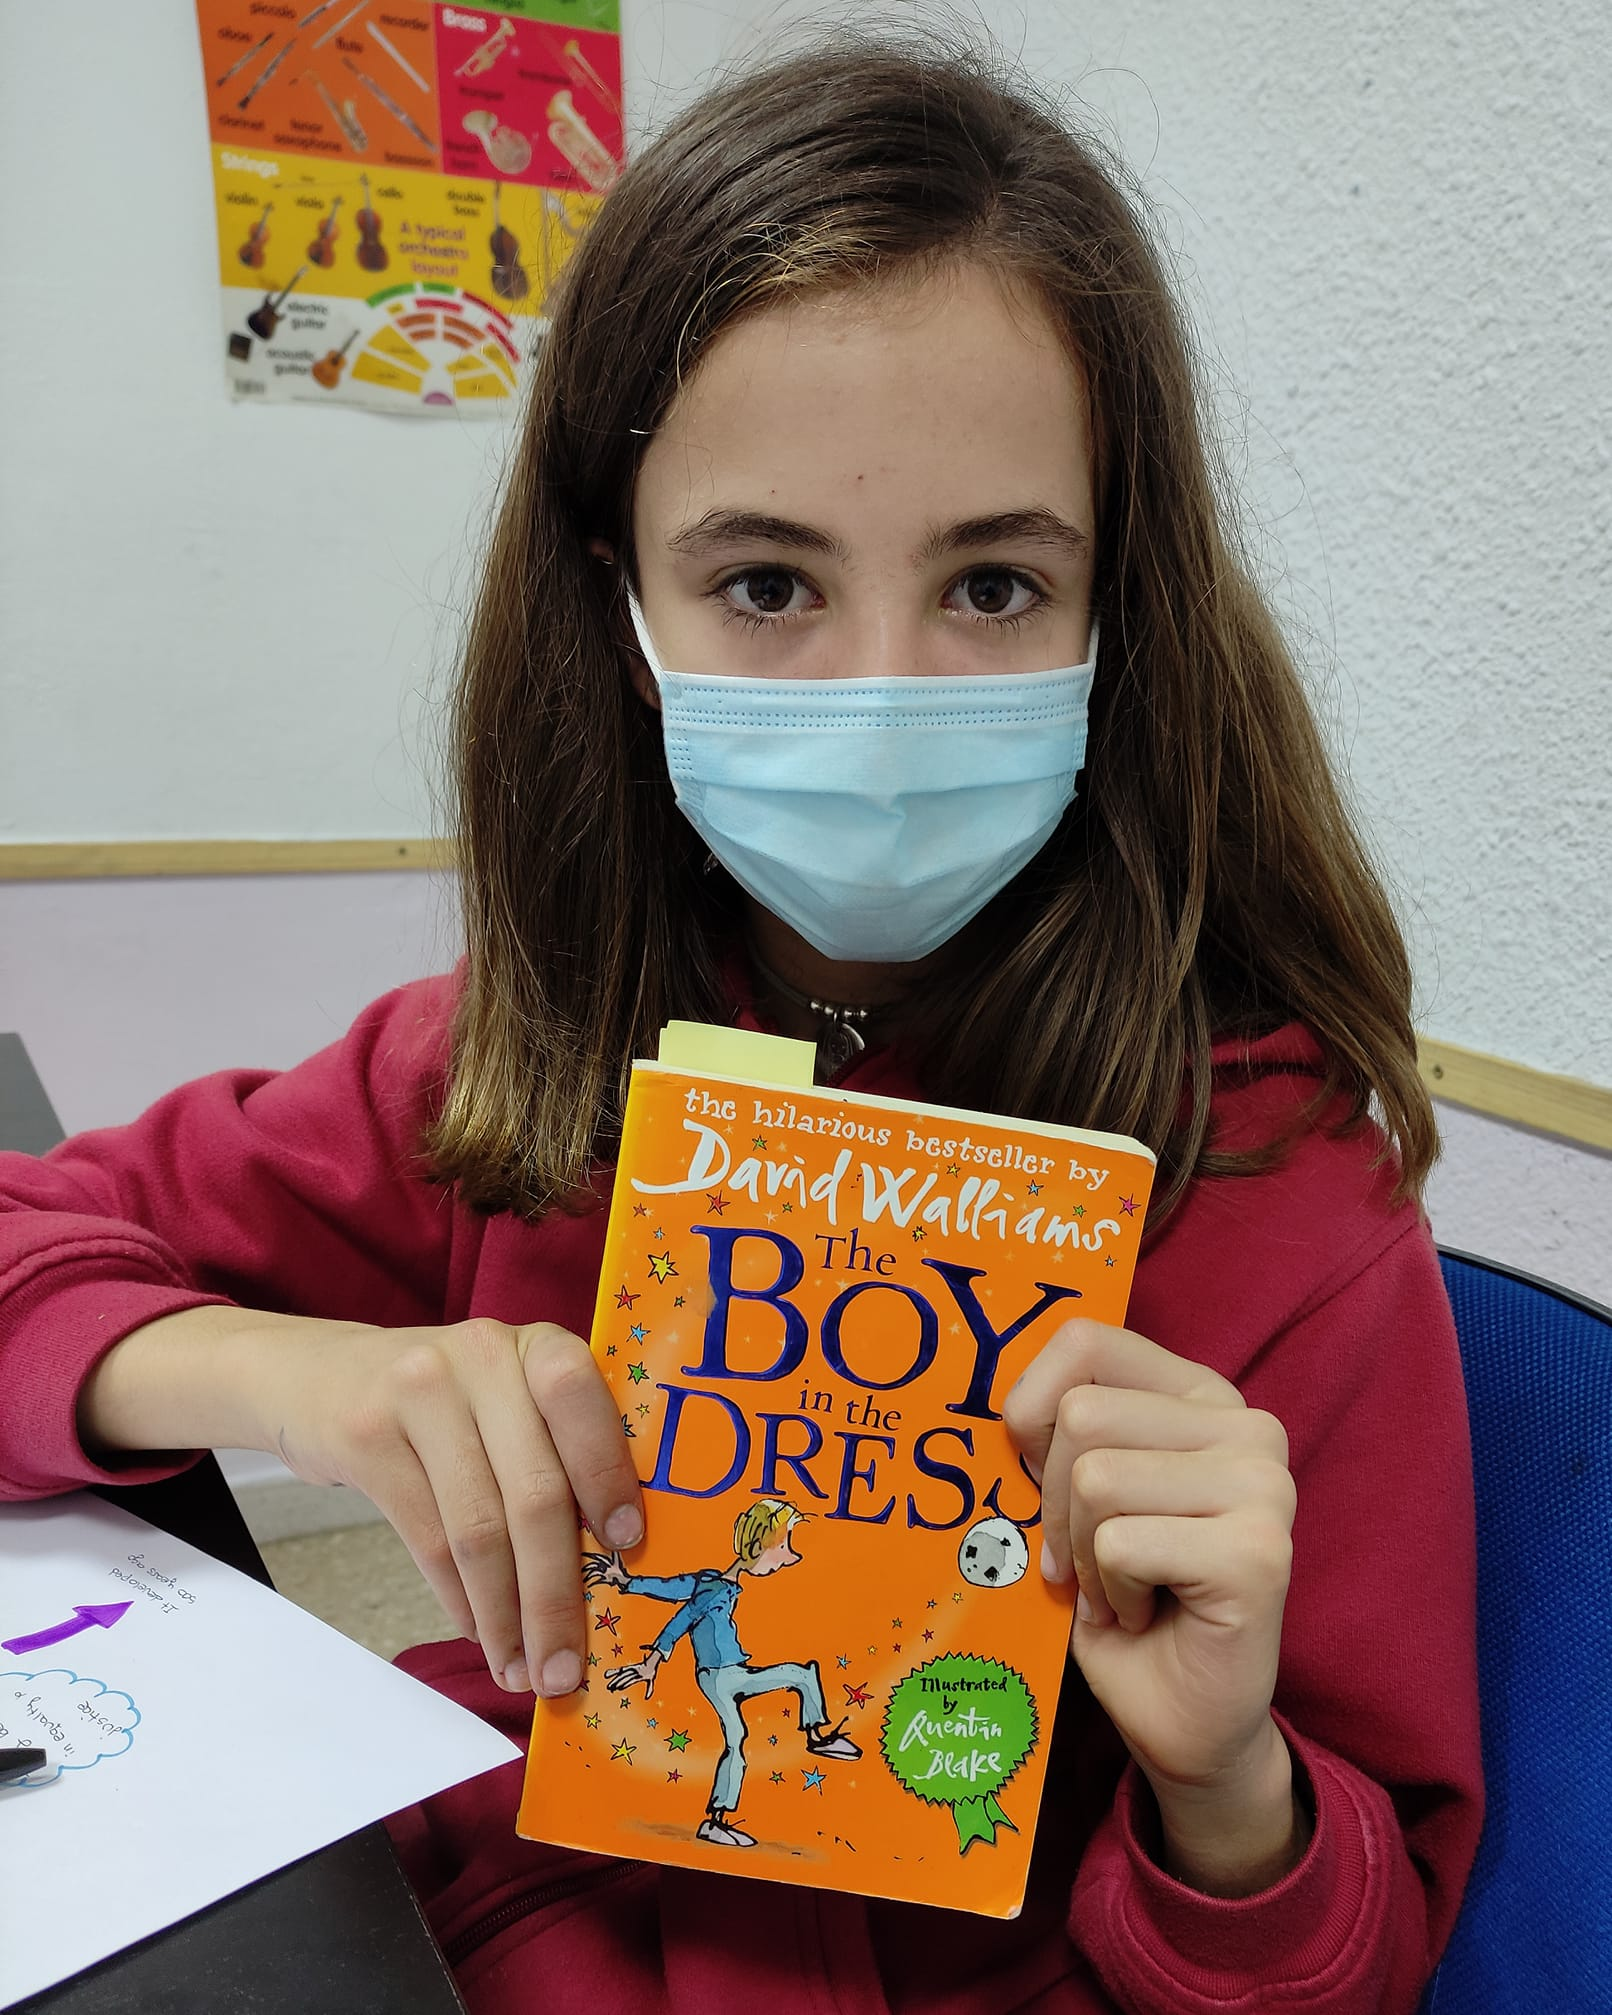 Have you read any books by David Walliams?